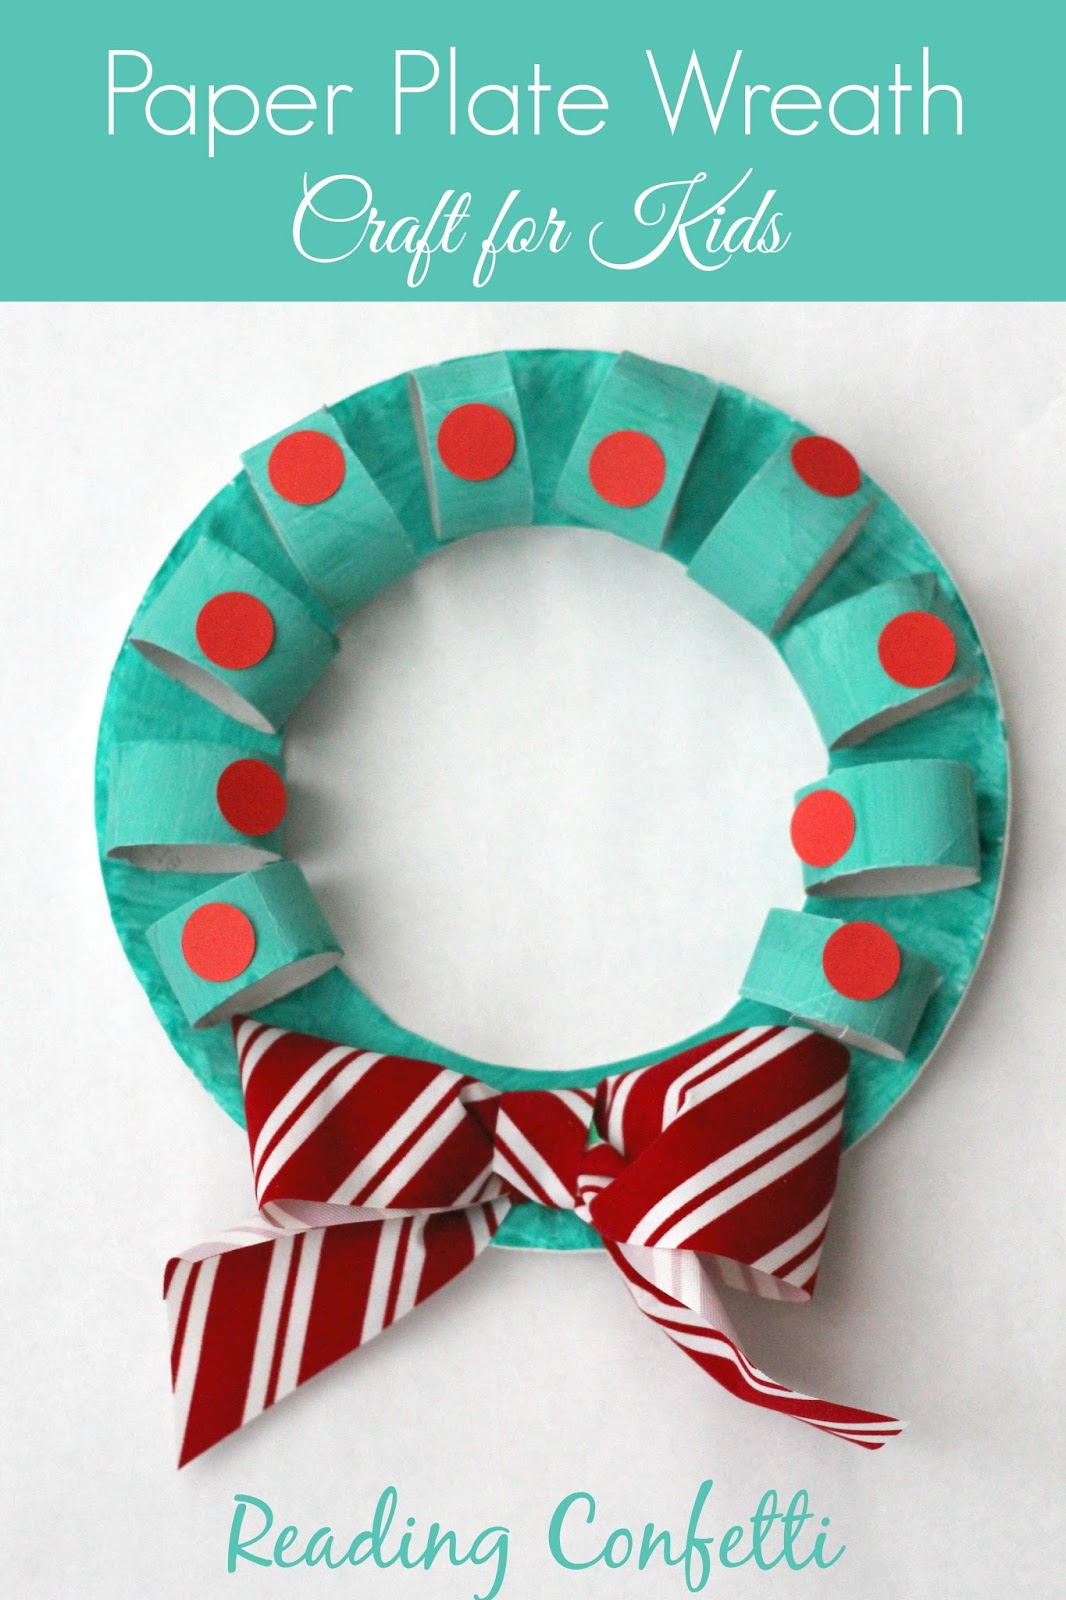 Weihnachtskranz Basteln Cardboard Tube And Paper Plate Wreath Craft Reading Confetti